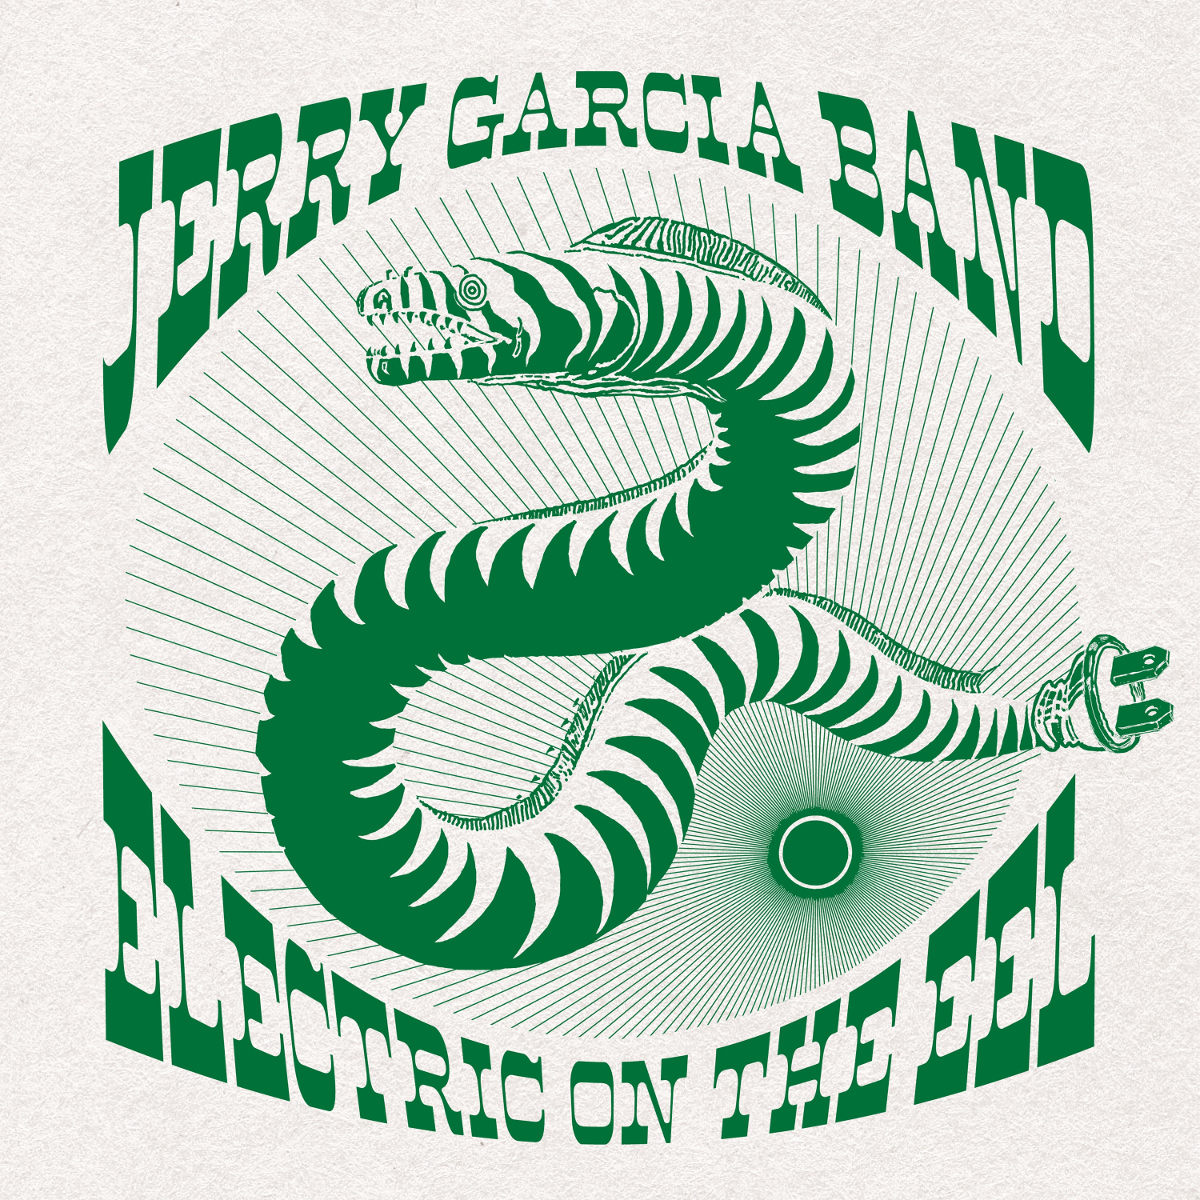 **SOLD OUT** Jerry Garcia Band - Electric on the Eel: CDs or Download, Poster & Organic T-Shirt Bundle